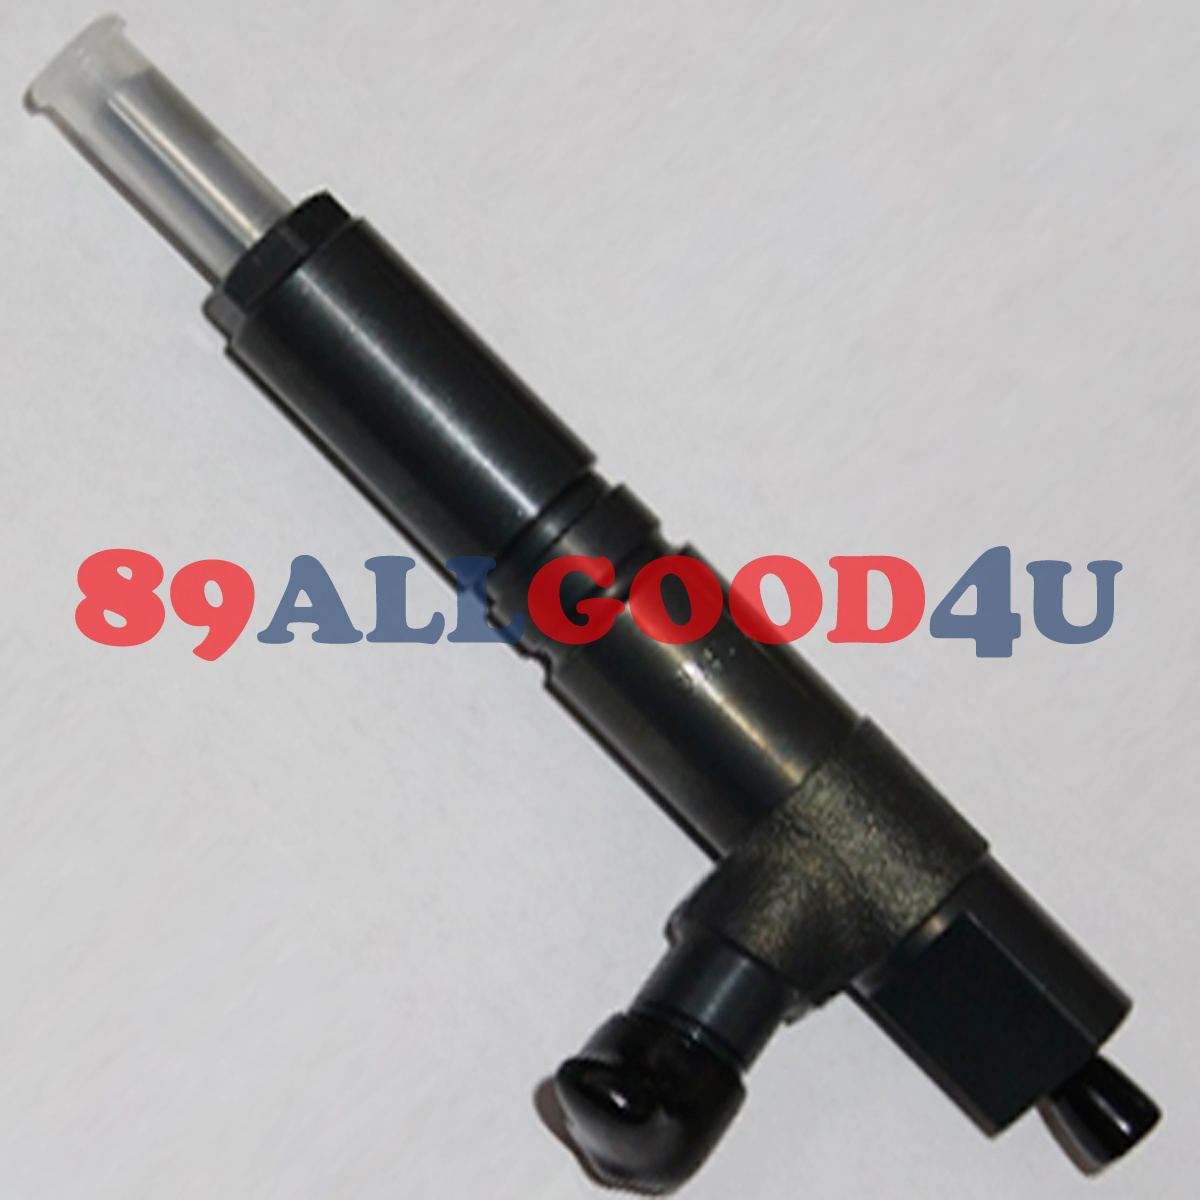 Details about Fuel Injector For Kubota V2203 MDI Engine Bobcat S130